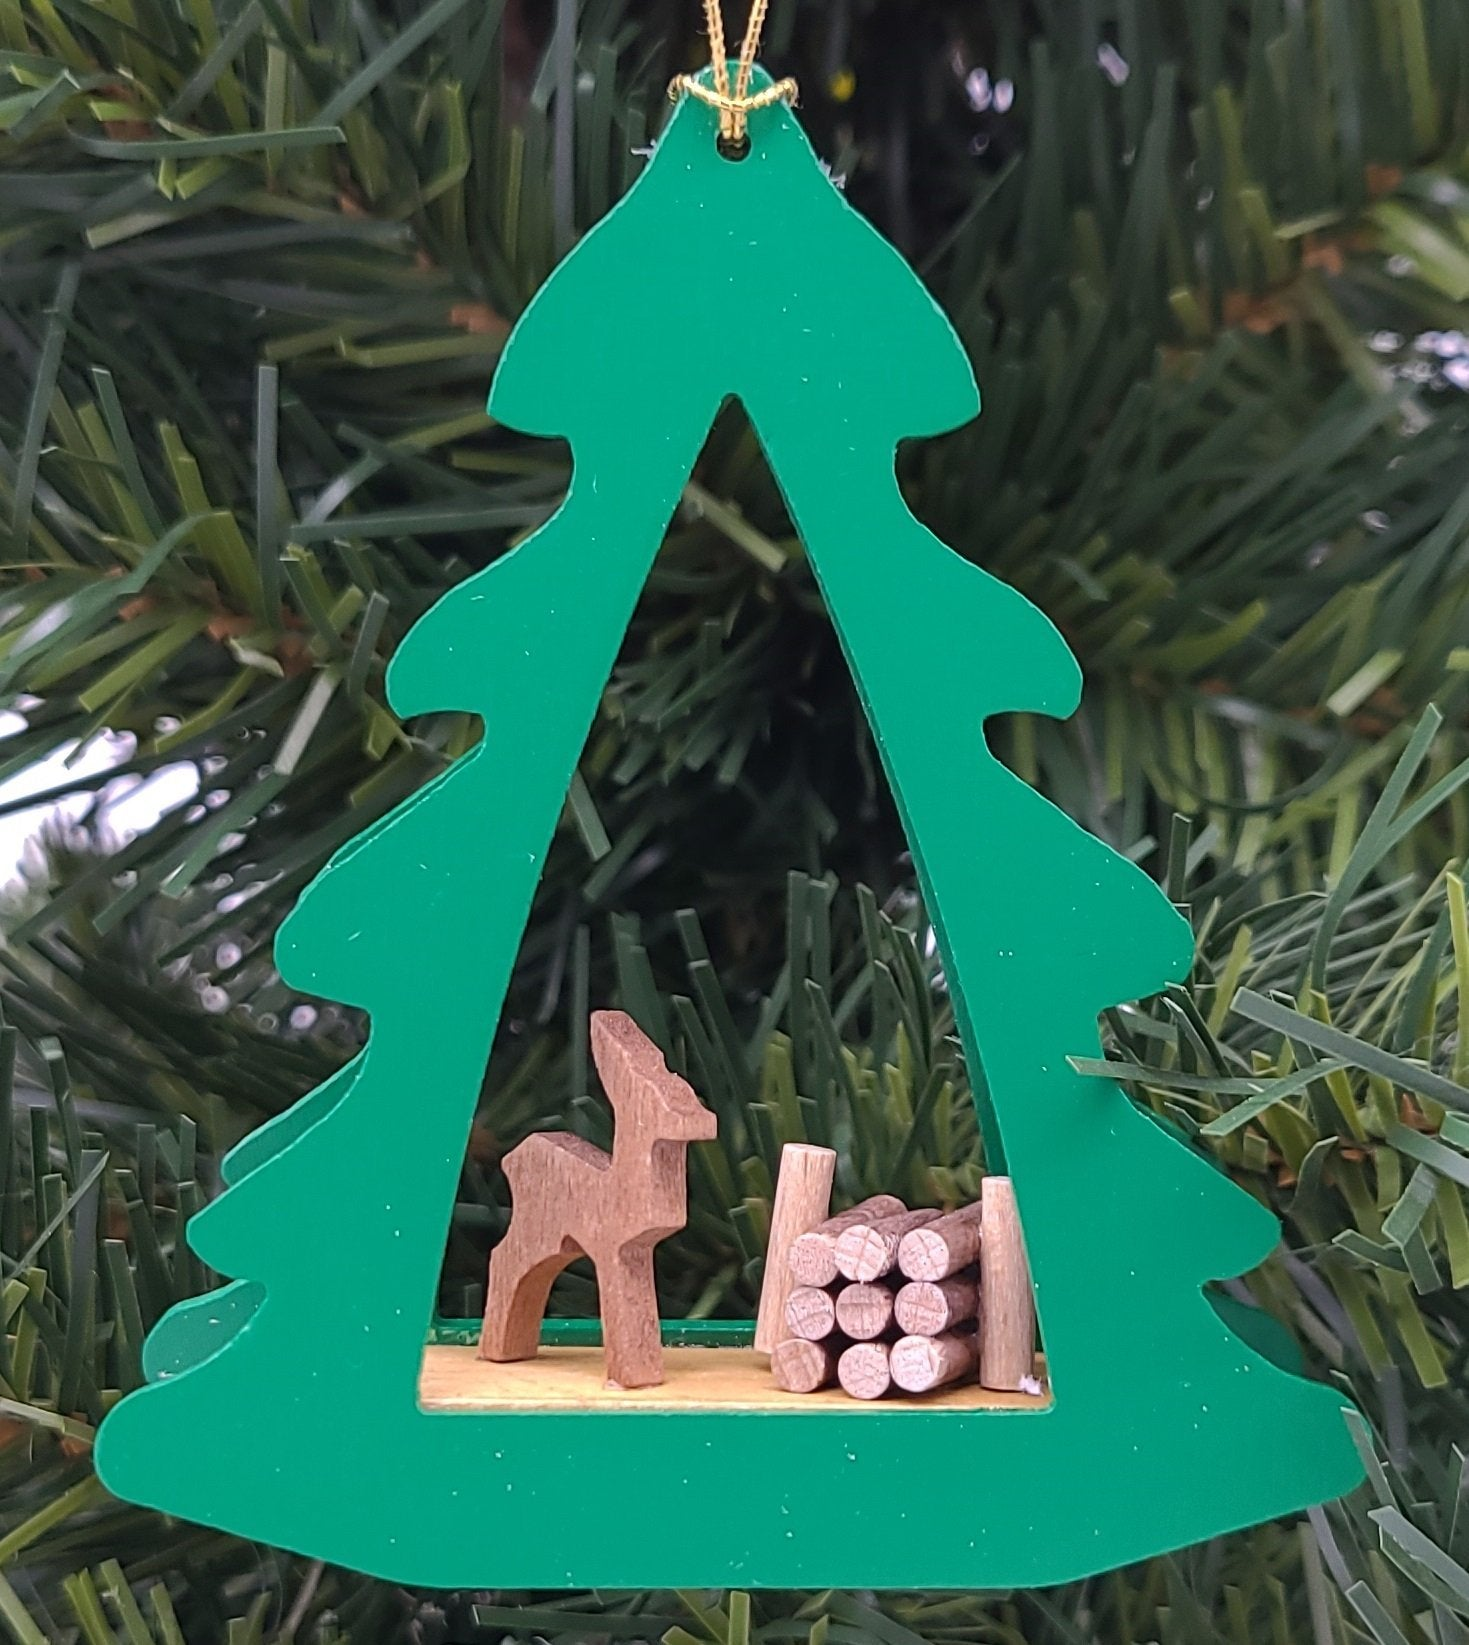 Handmade Hanging Green Wood Tree with Deer Ornament - Schmidt Christmas Market Christmas Decoration